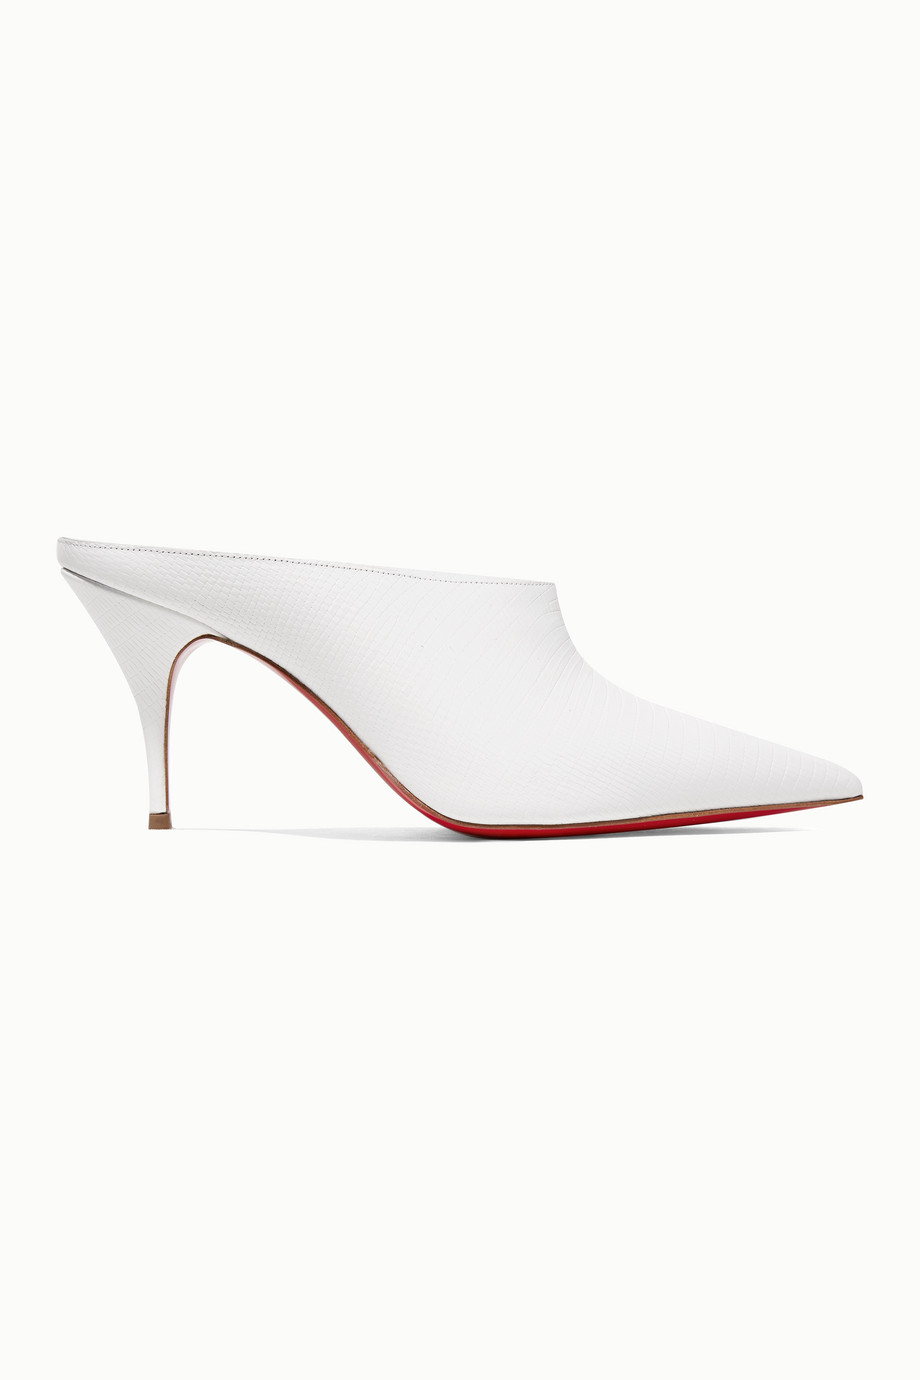 Christian Louboutin Quart 80 lizard-effect leather mules